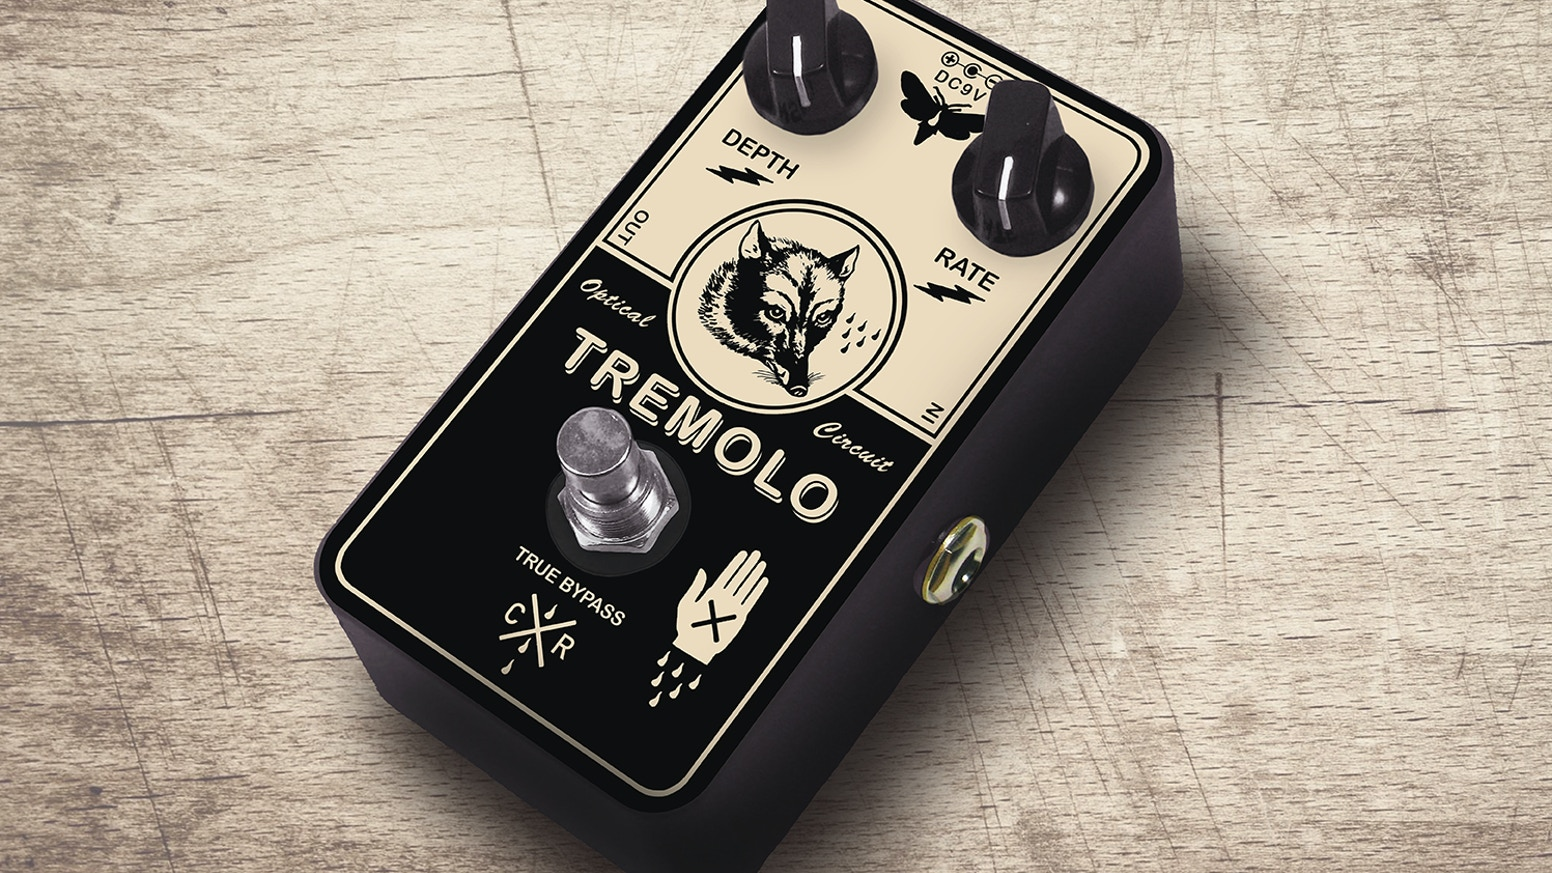 Clever Fox // boutique tremolo guitar pedal by Crystal Radio